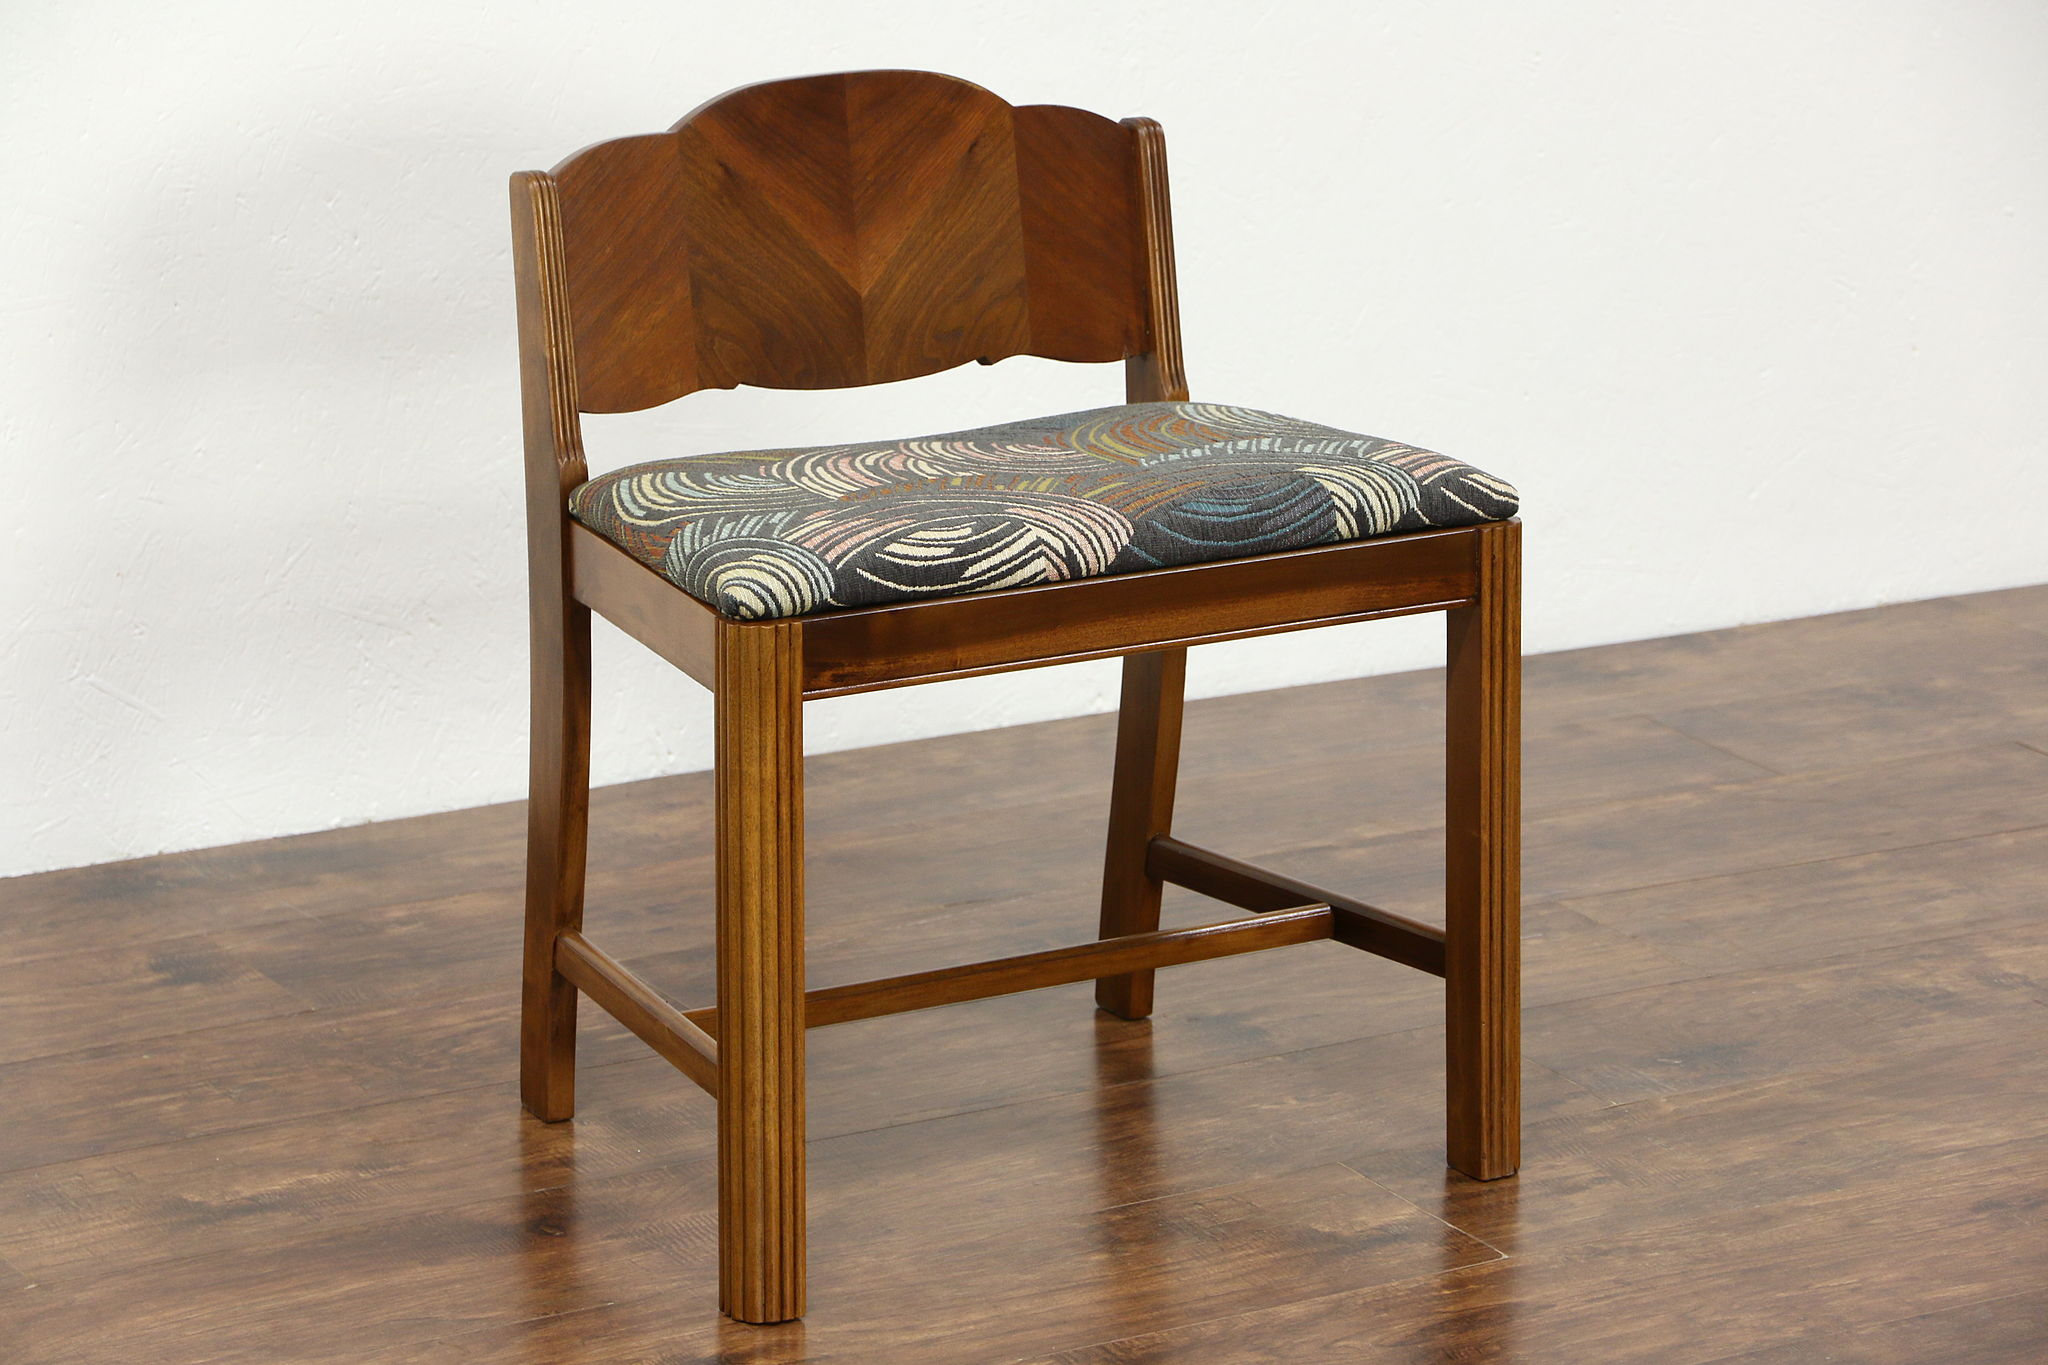 Sold Art Deco 1935 Vintage Bench Or Vanity Chair Newly